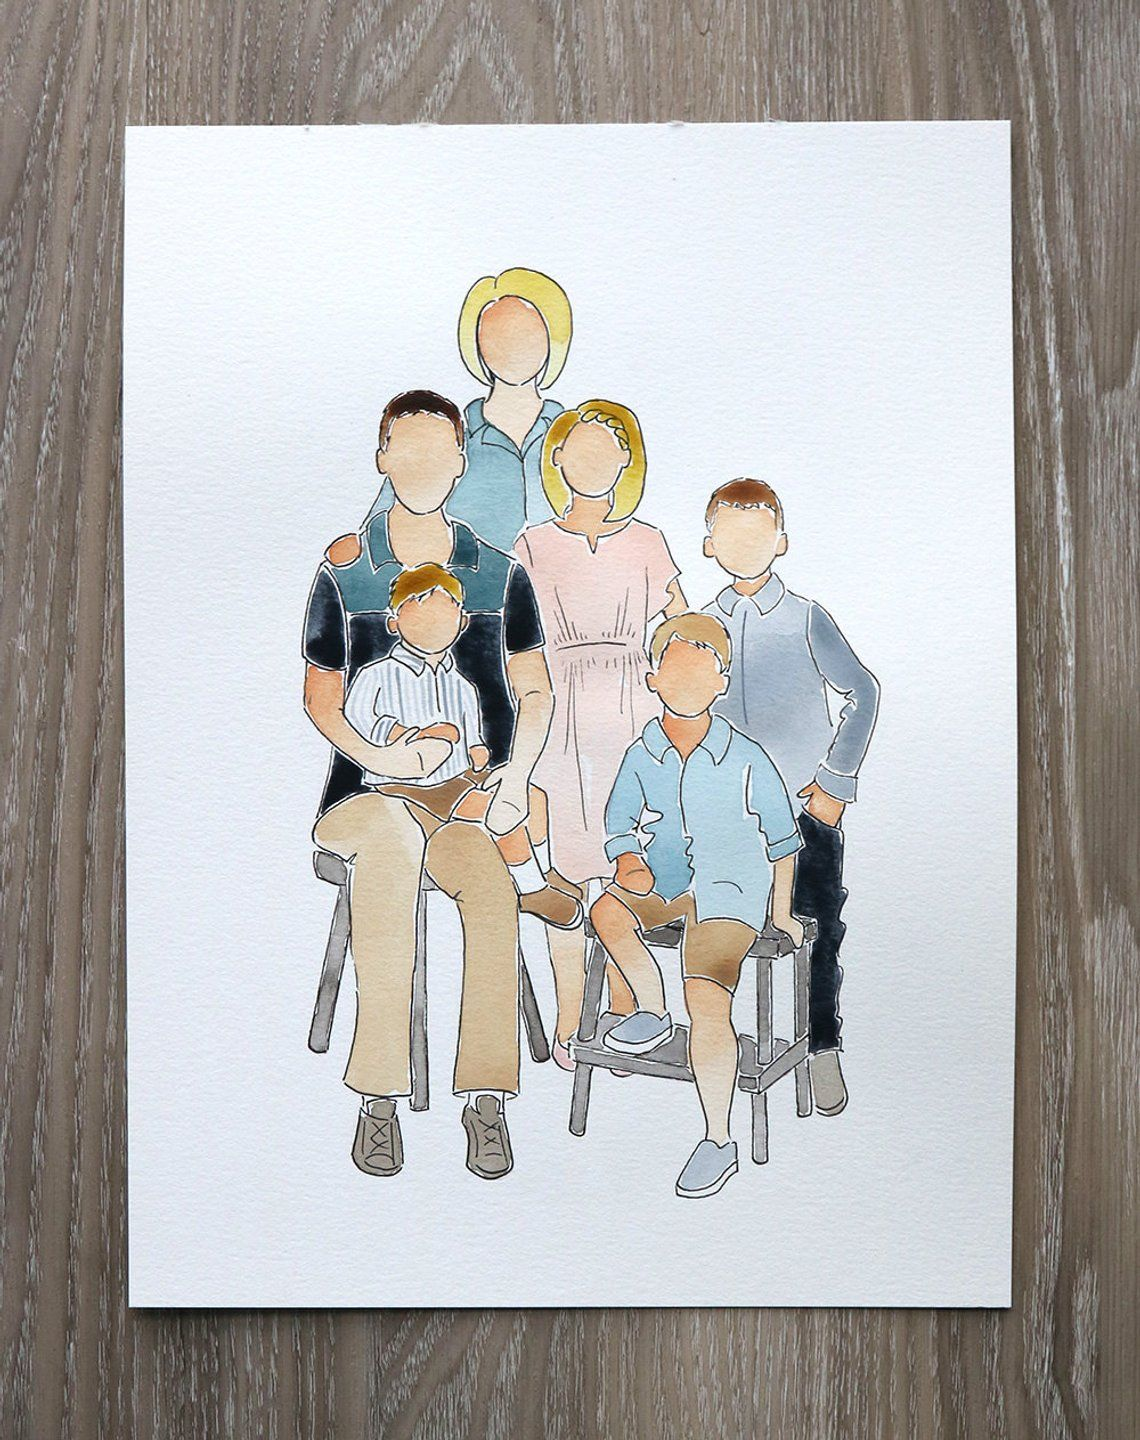 6 Person Watercolor Portrait In 2020 Watercolor Portraits